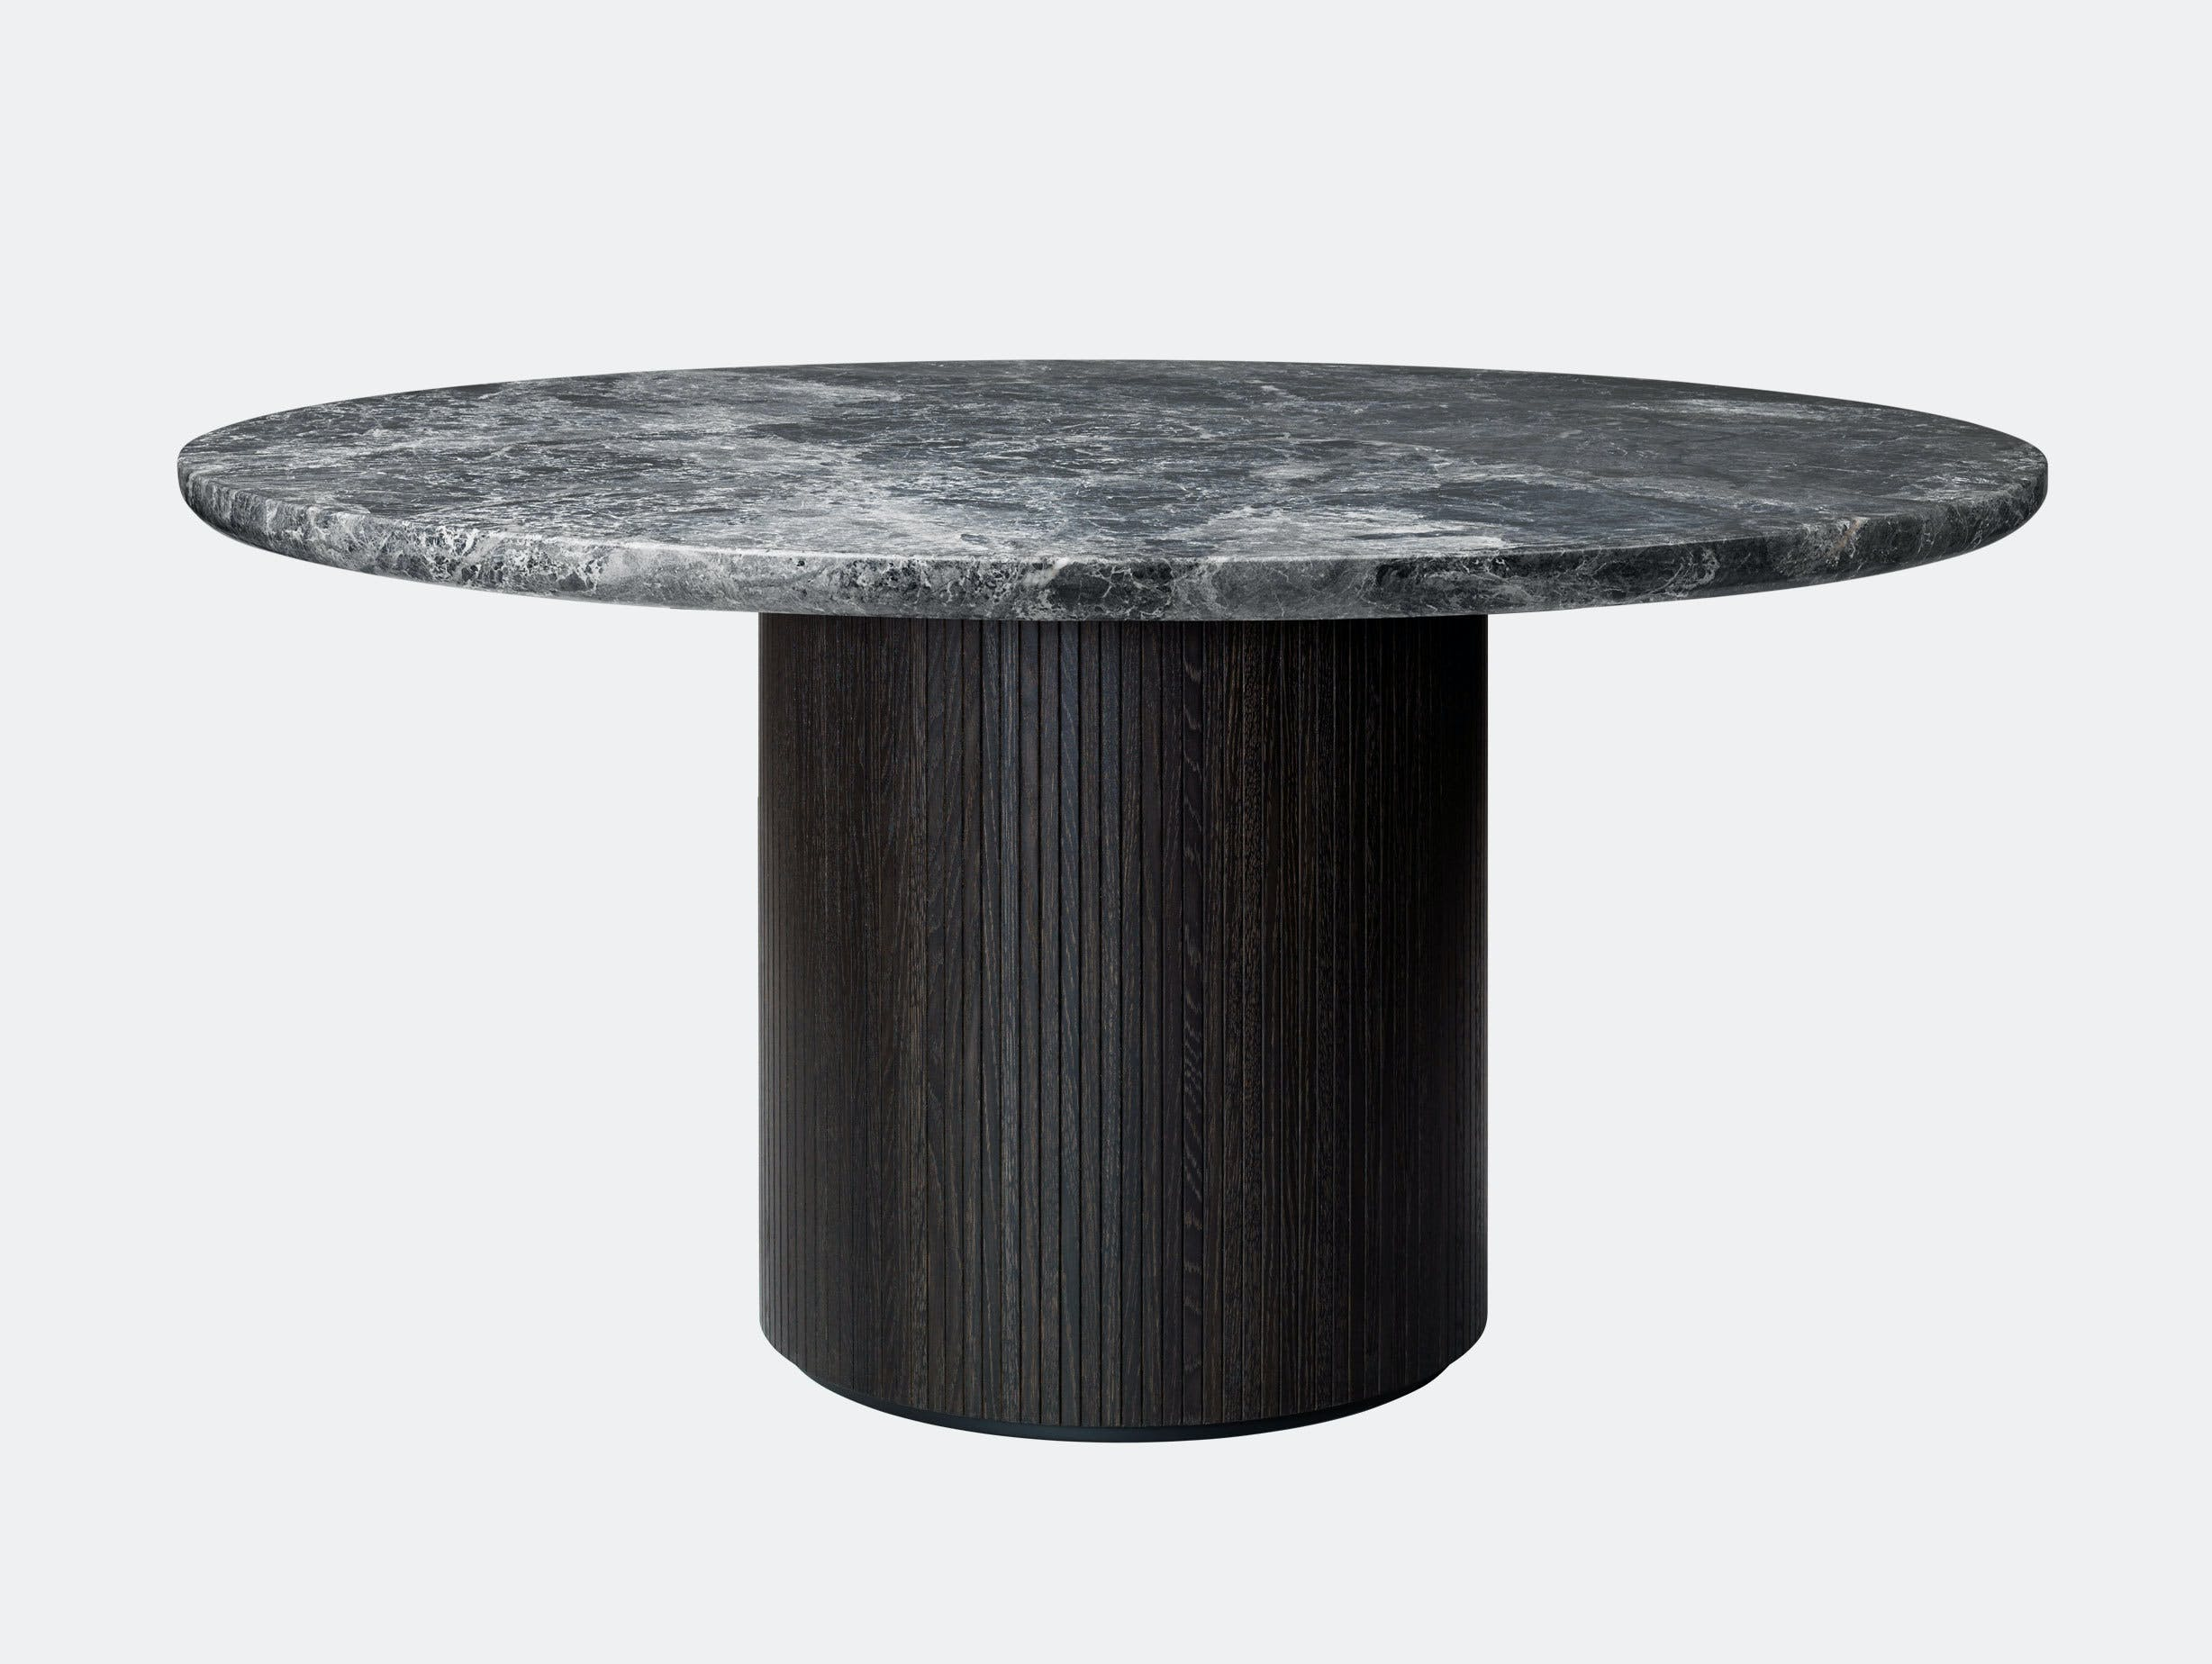 Gubi Moon Round Dining Table dia 150cm Grey Emperador Marble Space Copenhagen